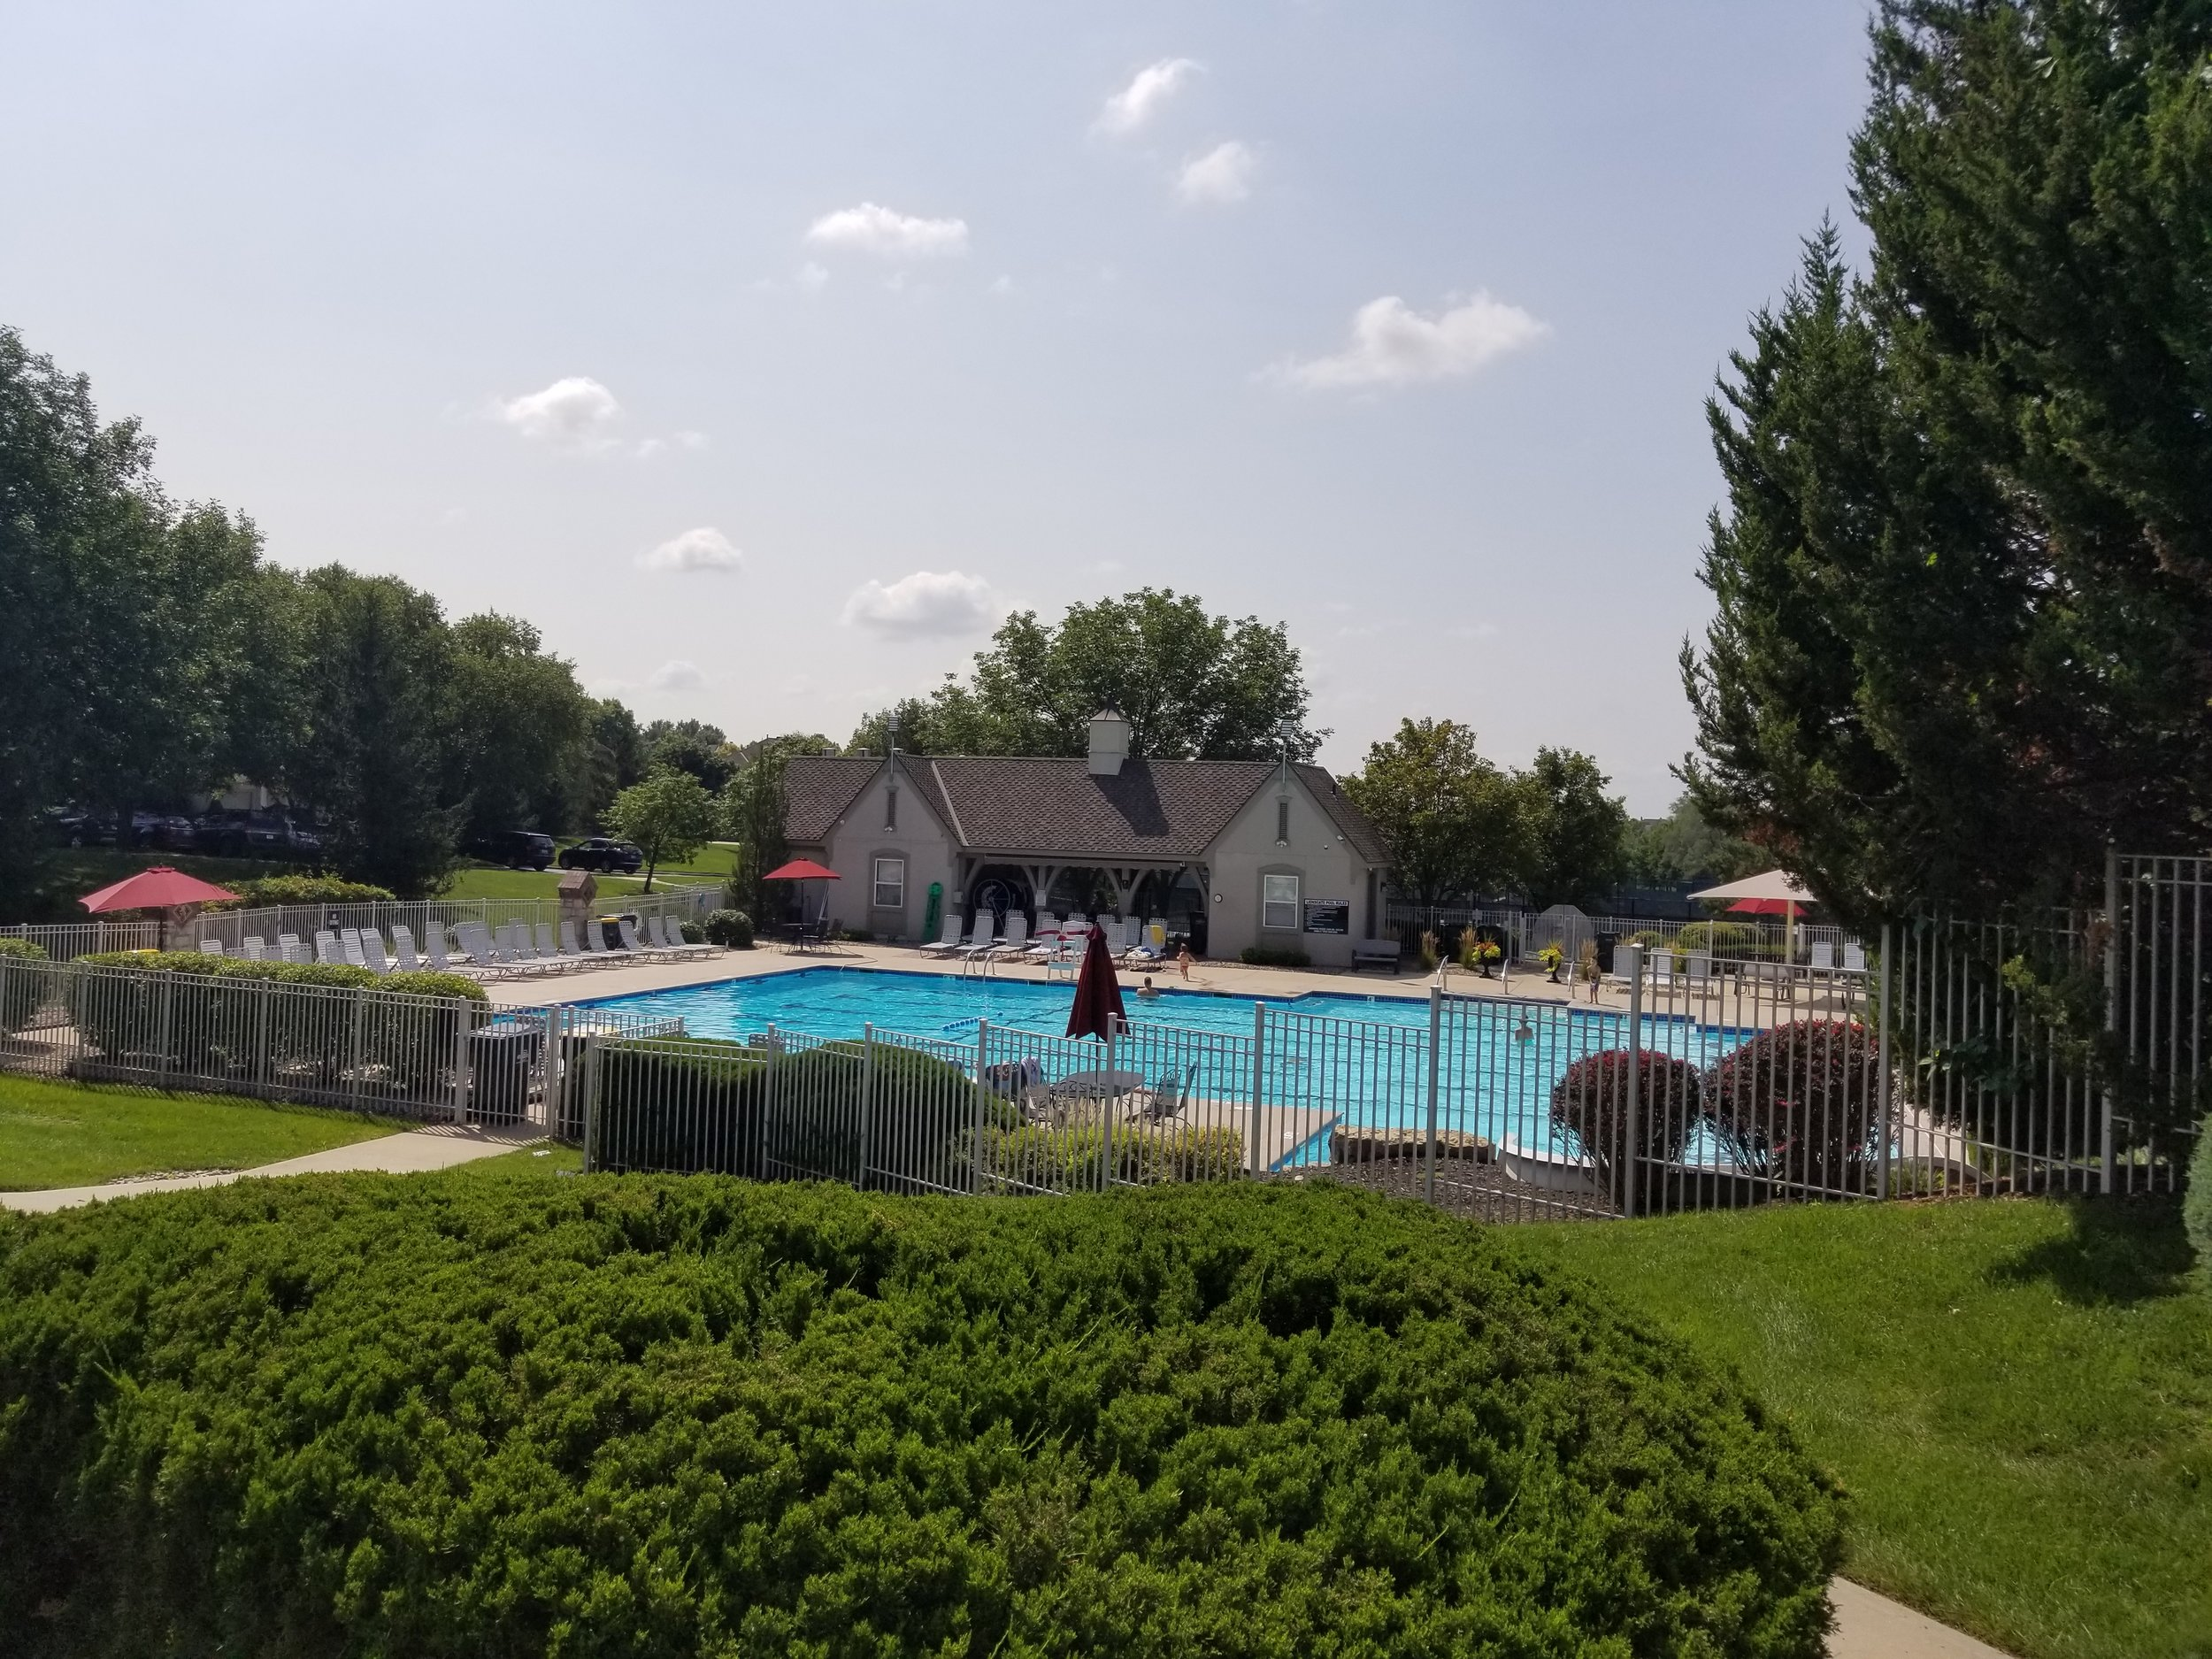 Our community pool